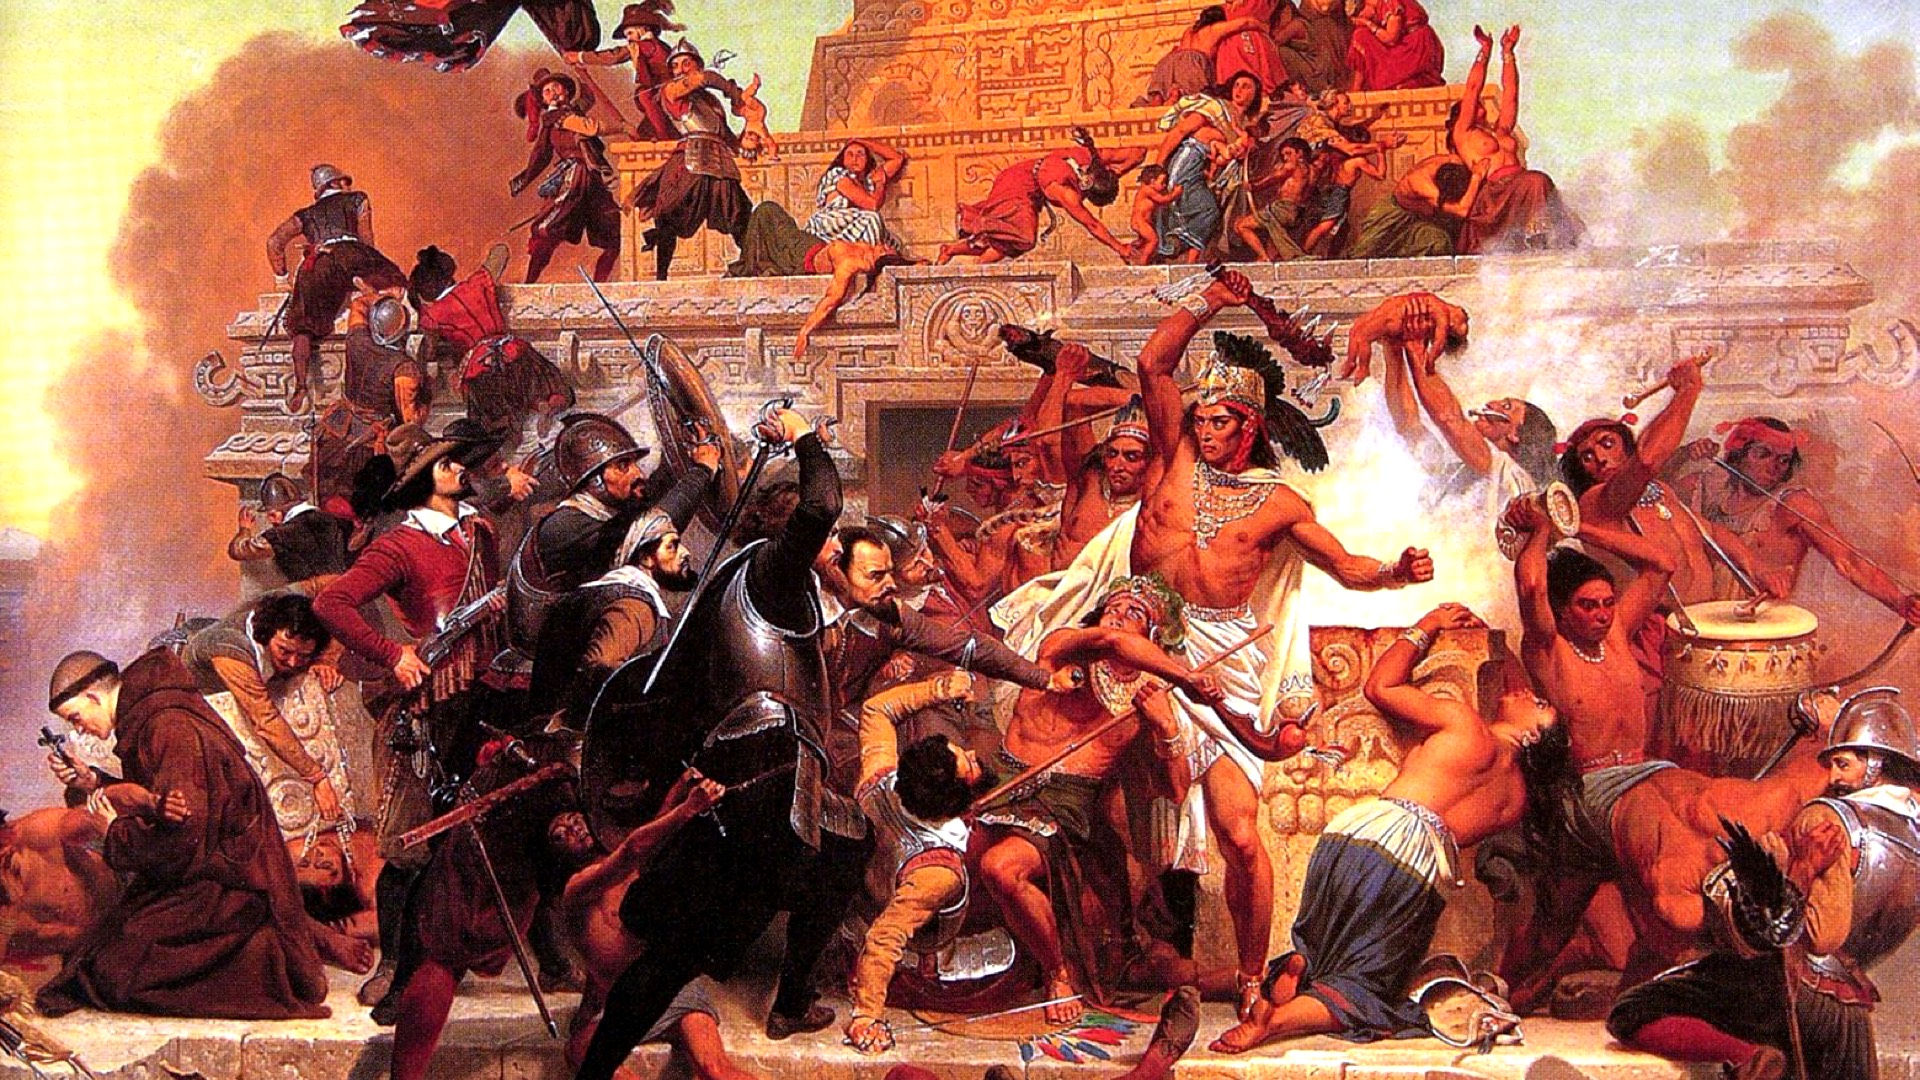 the destruction of the aztec empire through greed King montezuma, and the last stand of powered by a greed that but at the cost of an estimated 200,000 aztec dead the battle for the aztec empire.